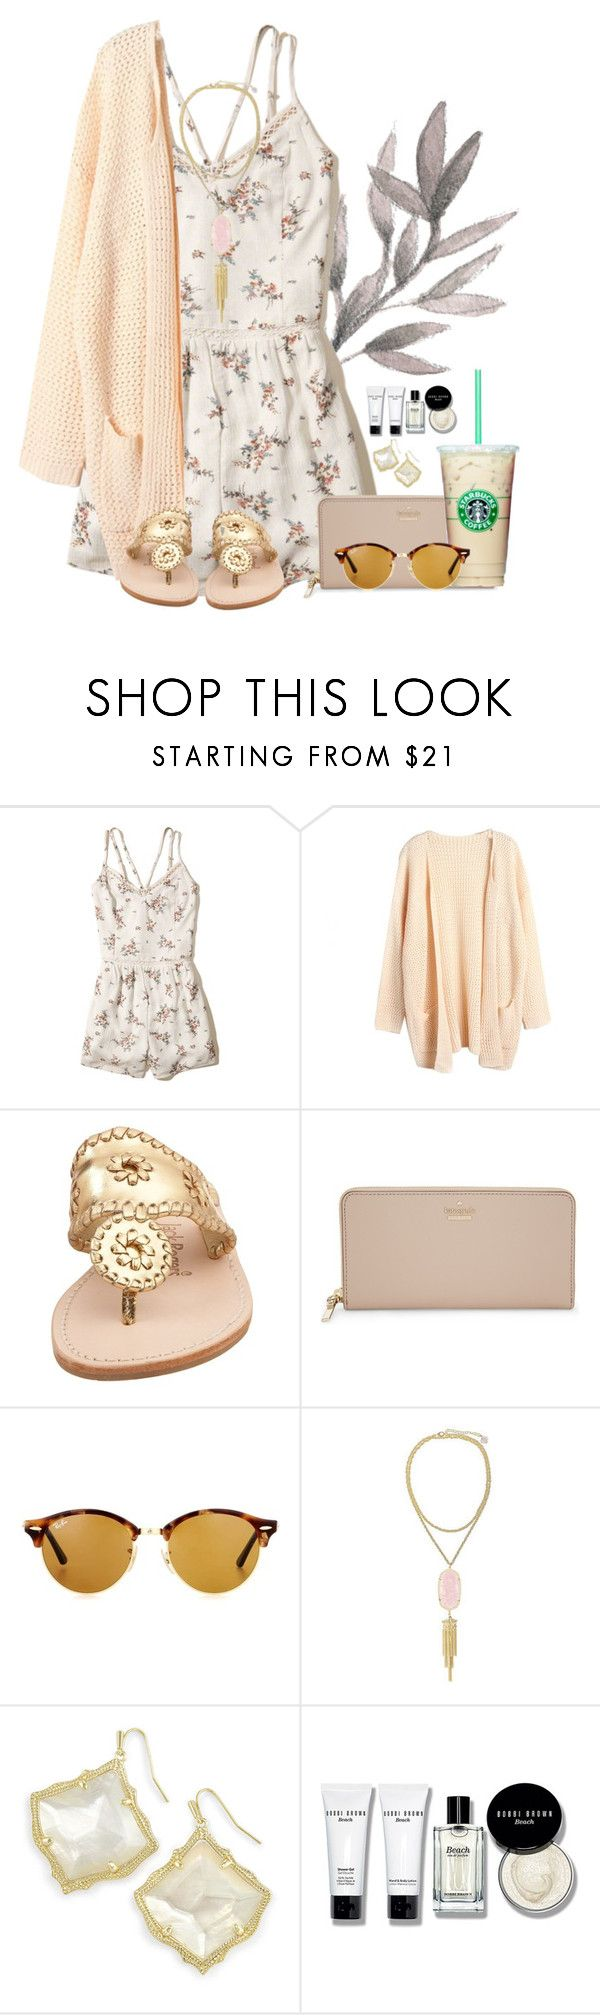 """""""Pastel OOTD"""" by annaewakefield ❤ liked on Polyvore featuring Hollister Co., Jack Rogers, Kate Spade, Ray-Ban, Kendra Scott and Bobbi Brown Cosmetics"""